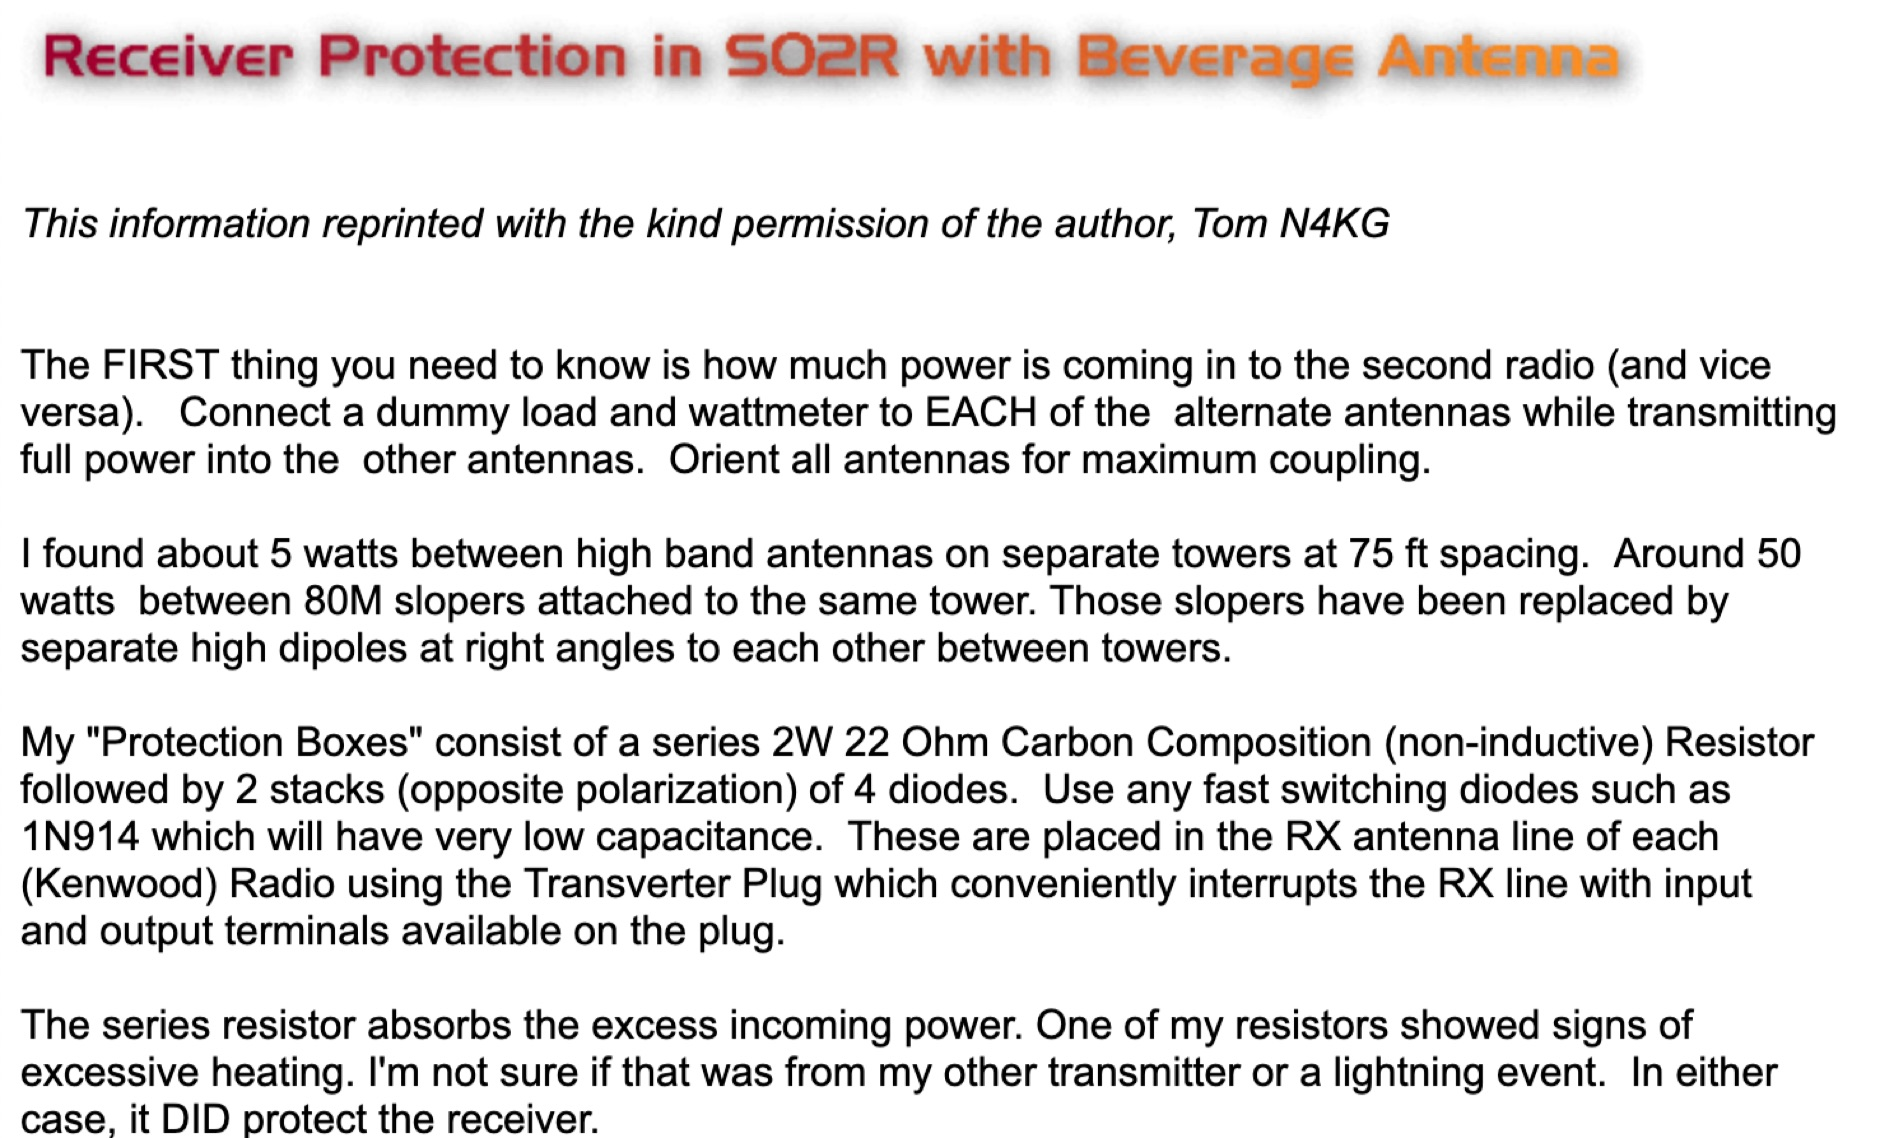 DXZone Receiver Protection in SO2R and Beverage Antennas